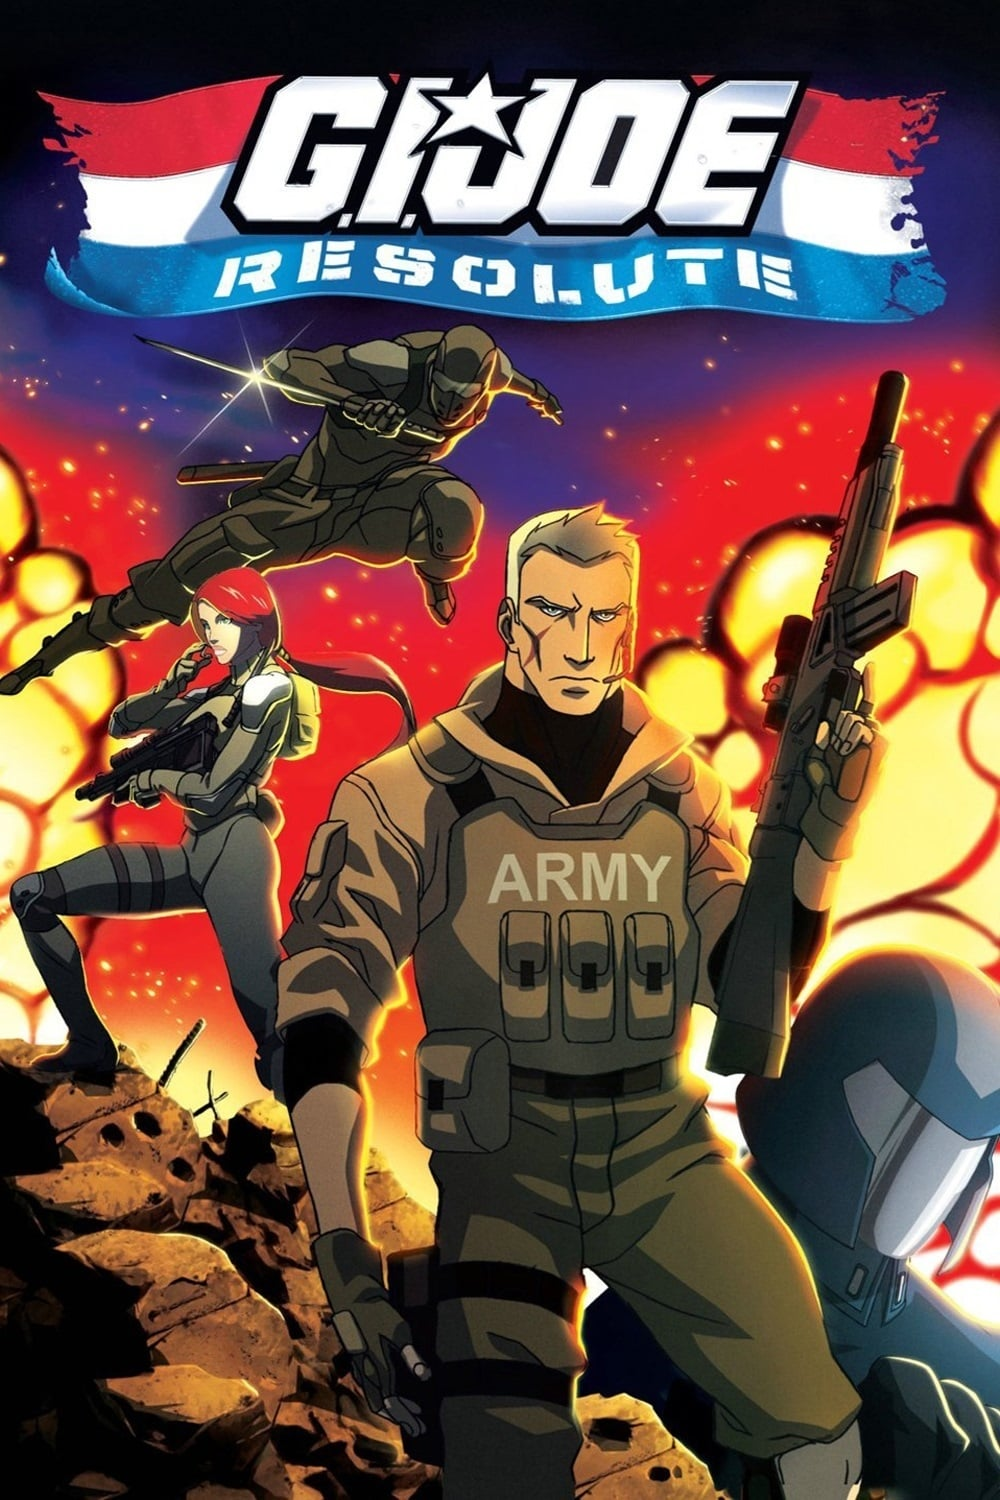 Watch GI Joe Online - Full Episodes of Season 7 to 1 Yidio